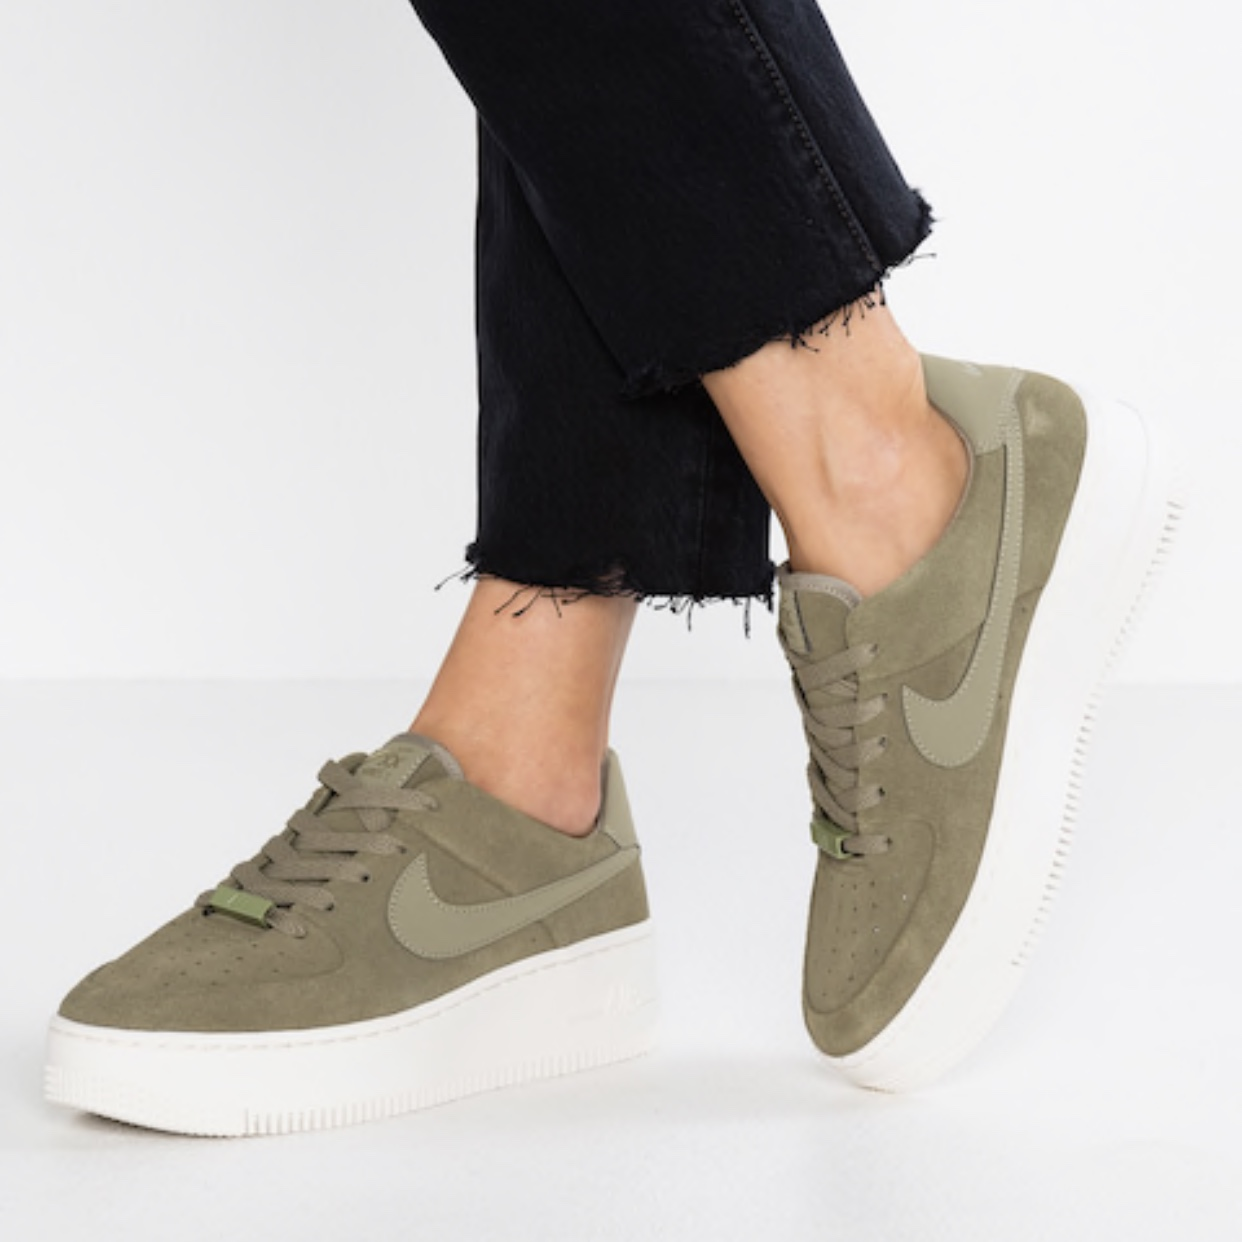 NEW NIKE AIR FORCE 1 SAGE LOW SIZE 9W